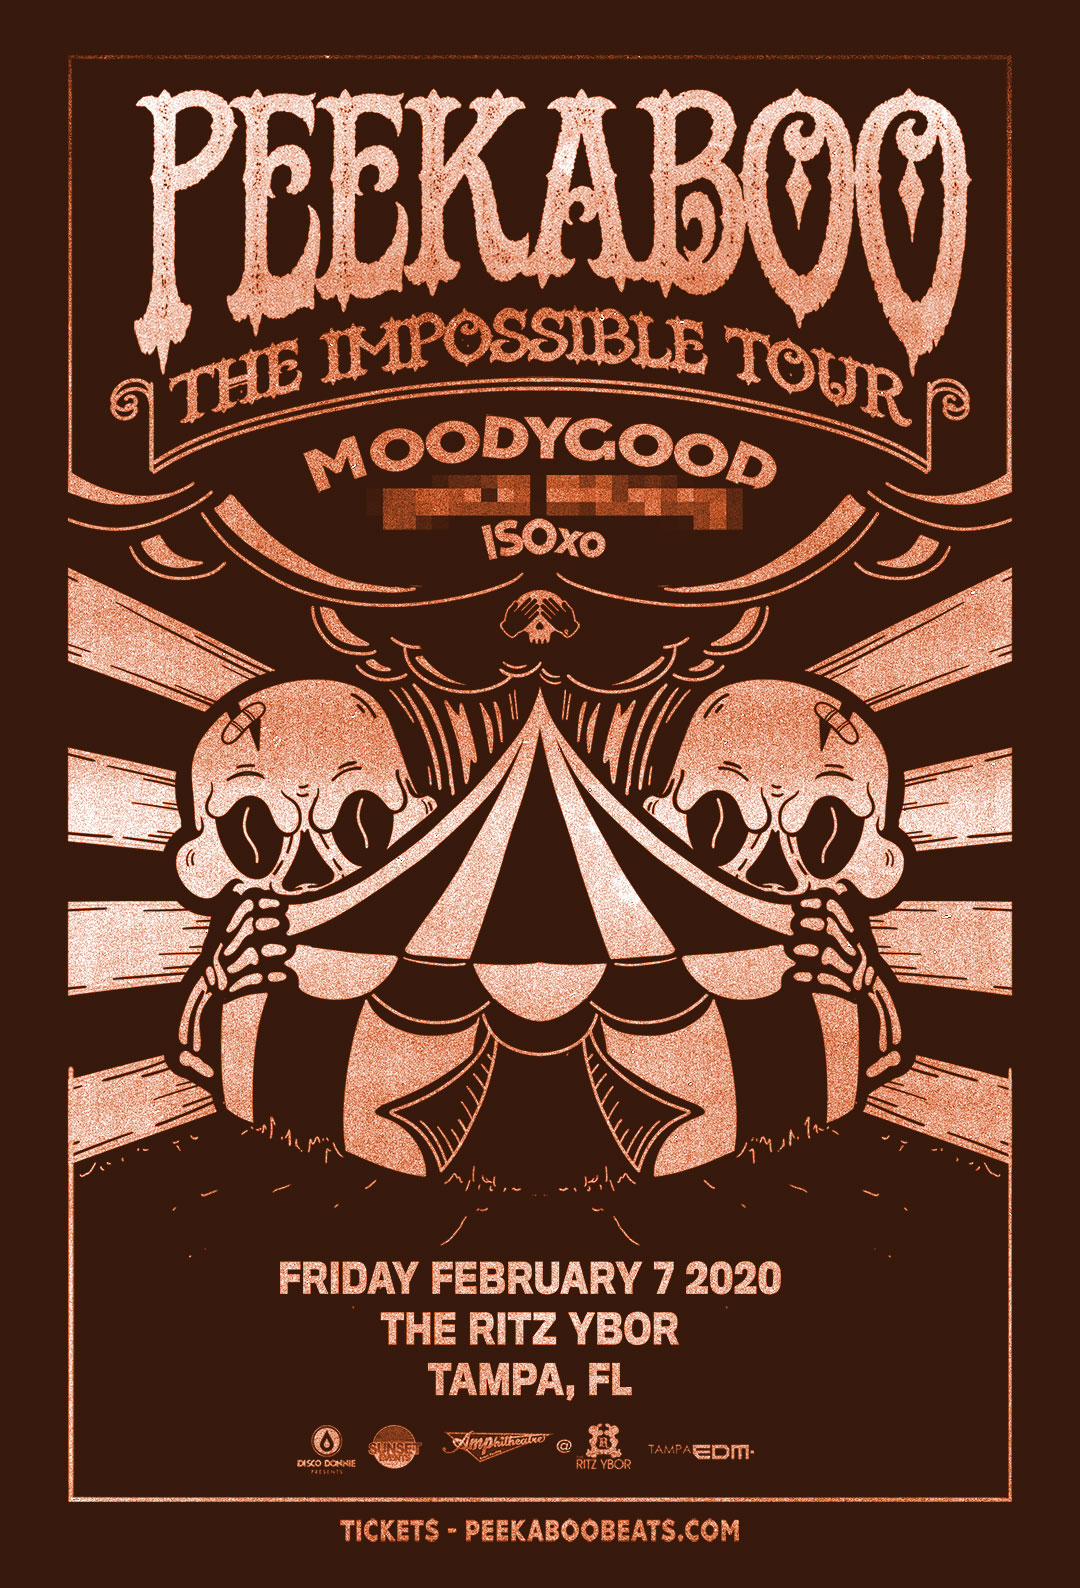 The Impossible Tour with PEEKABOO at The RITZ Ybor – 2/7/2020